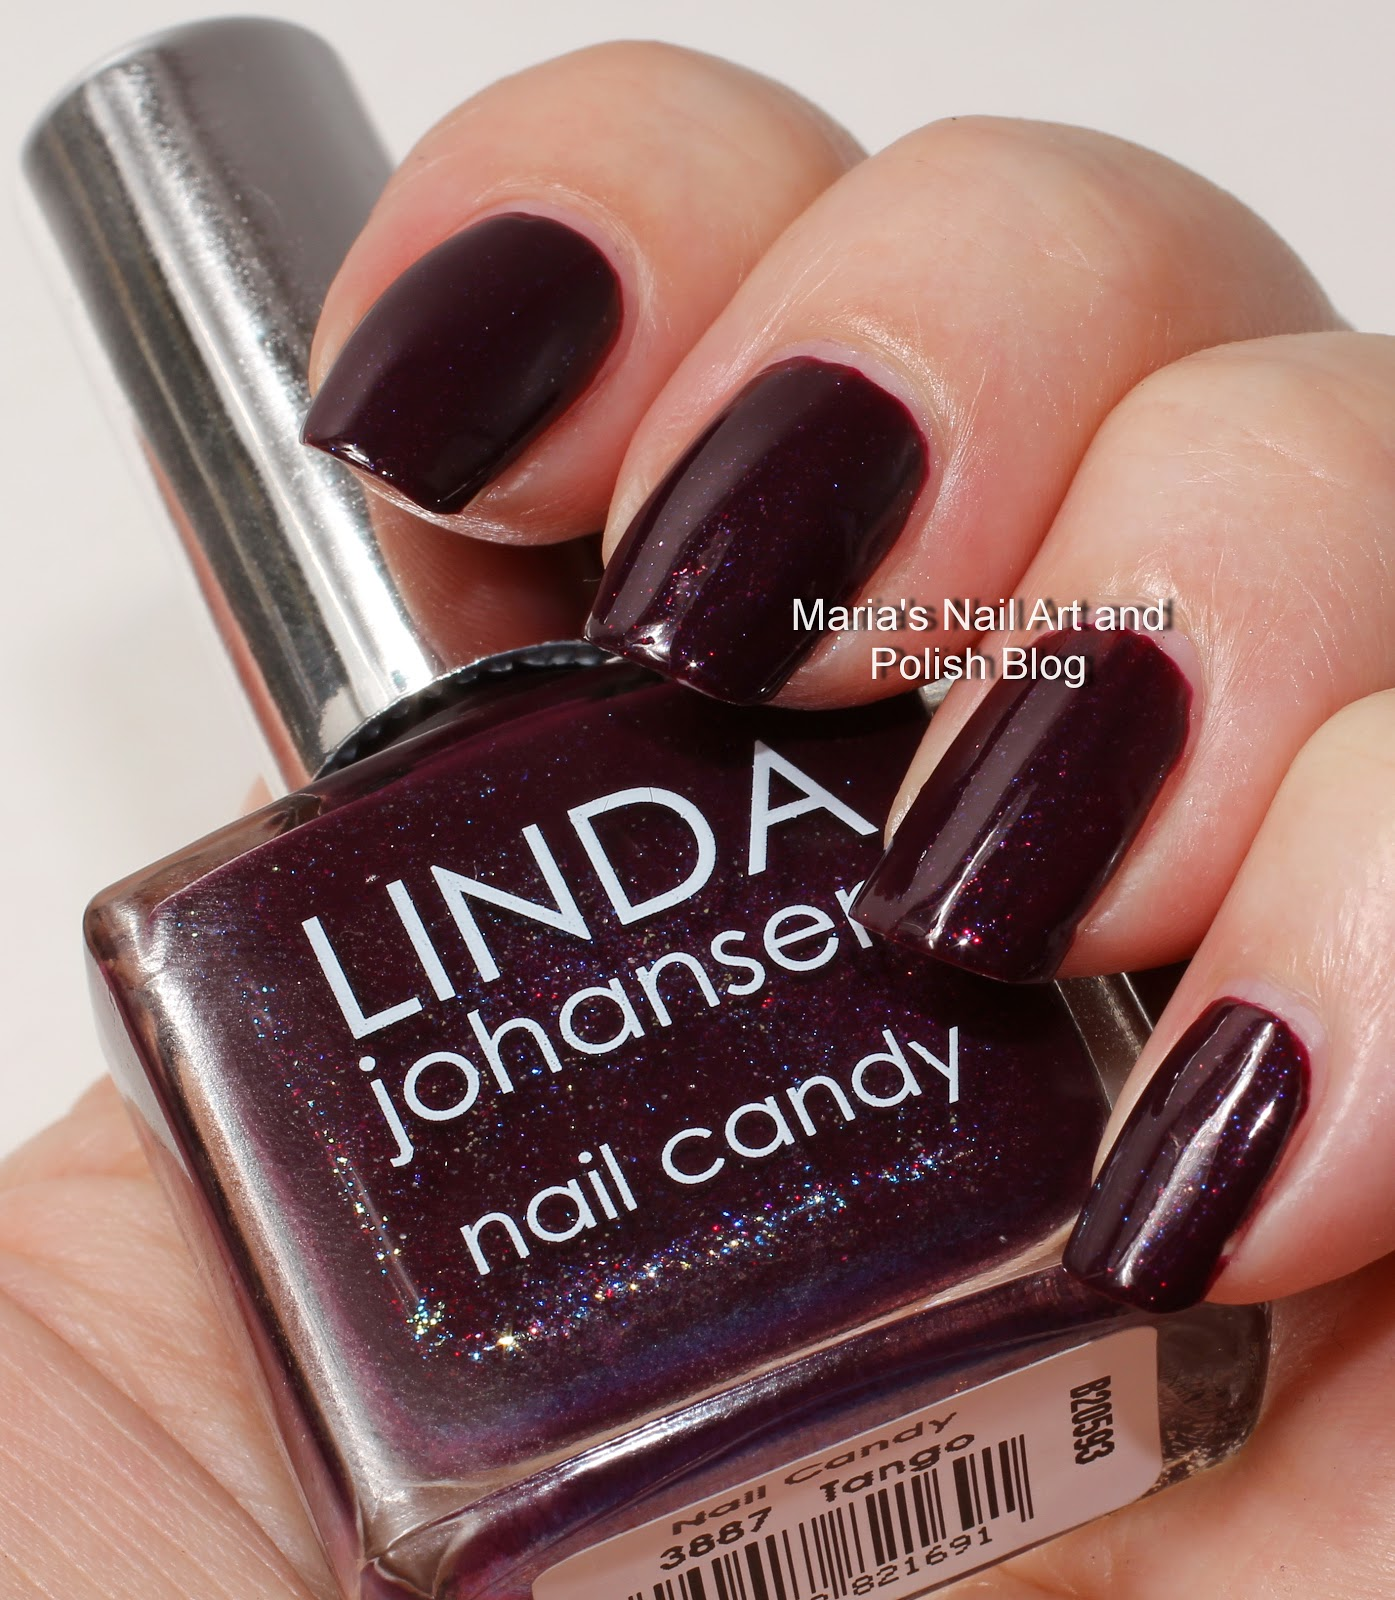 Marias Nail Art And Polish Blog Flushed With Stripes And: Marias Nail Art And Polish Blog: Linda Johansen Tango Swatches